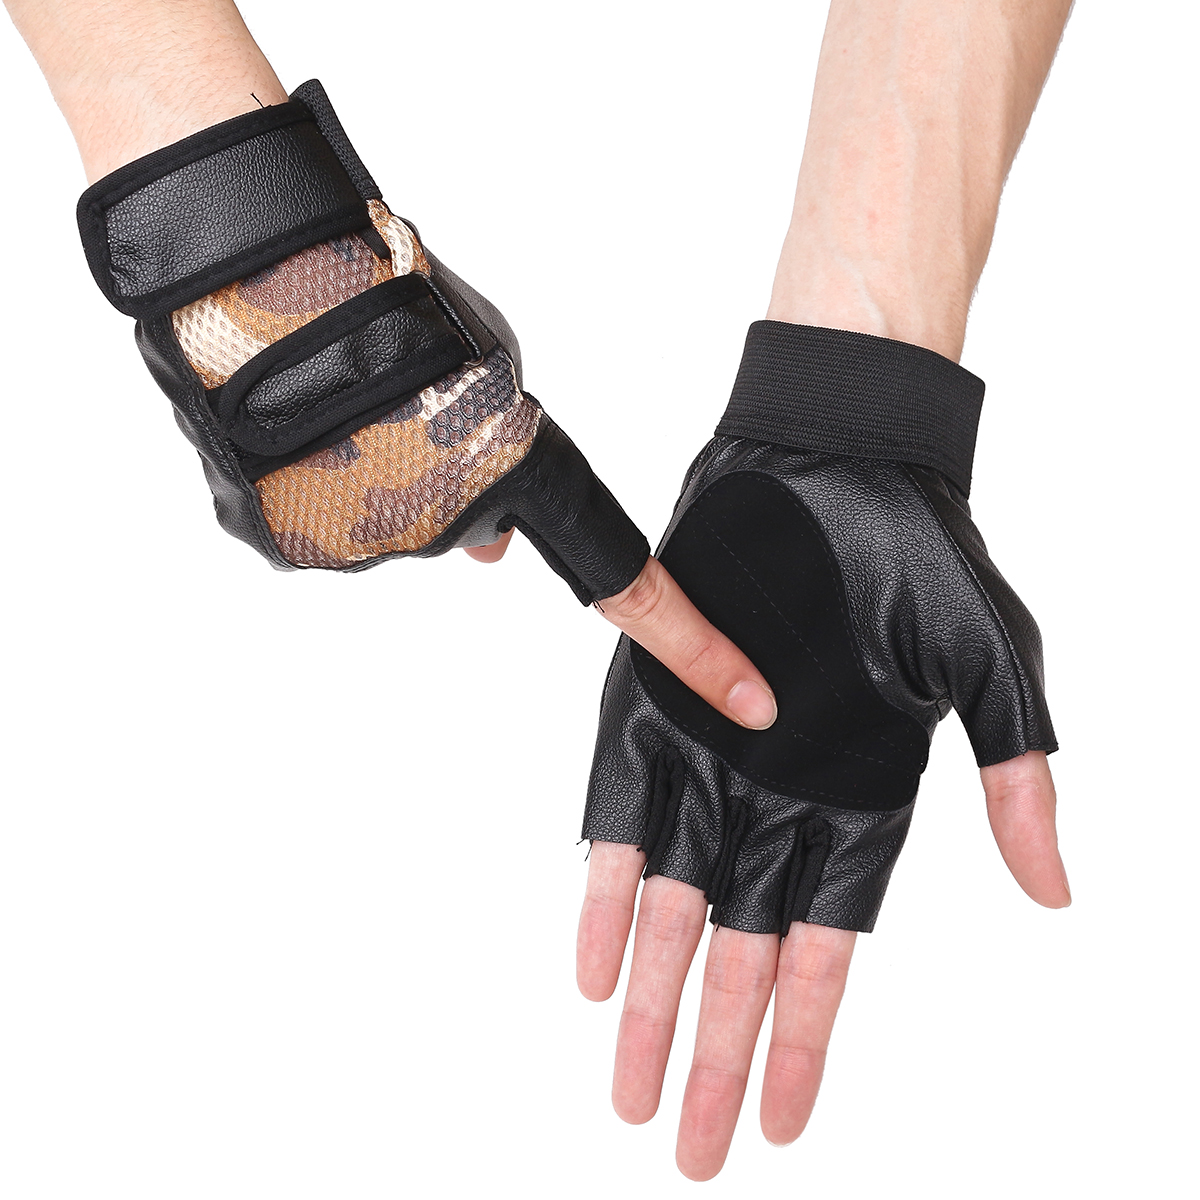 Aqf Weight Lifting Gloves Ultralight Breathable Gym Gloves: Adjustable Leather Fitness Sports Gym Weight Lifting Half